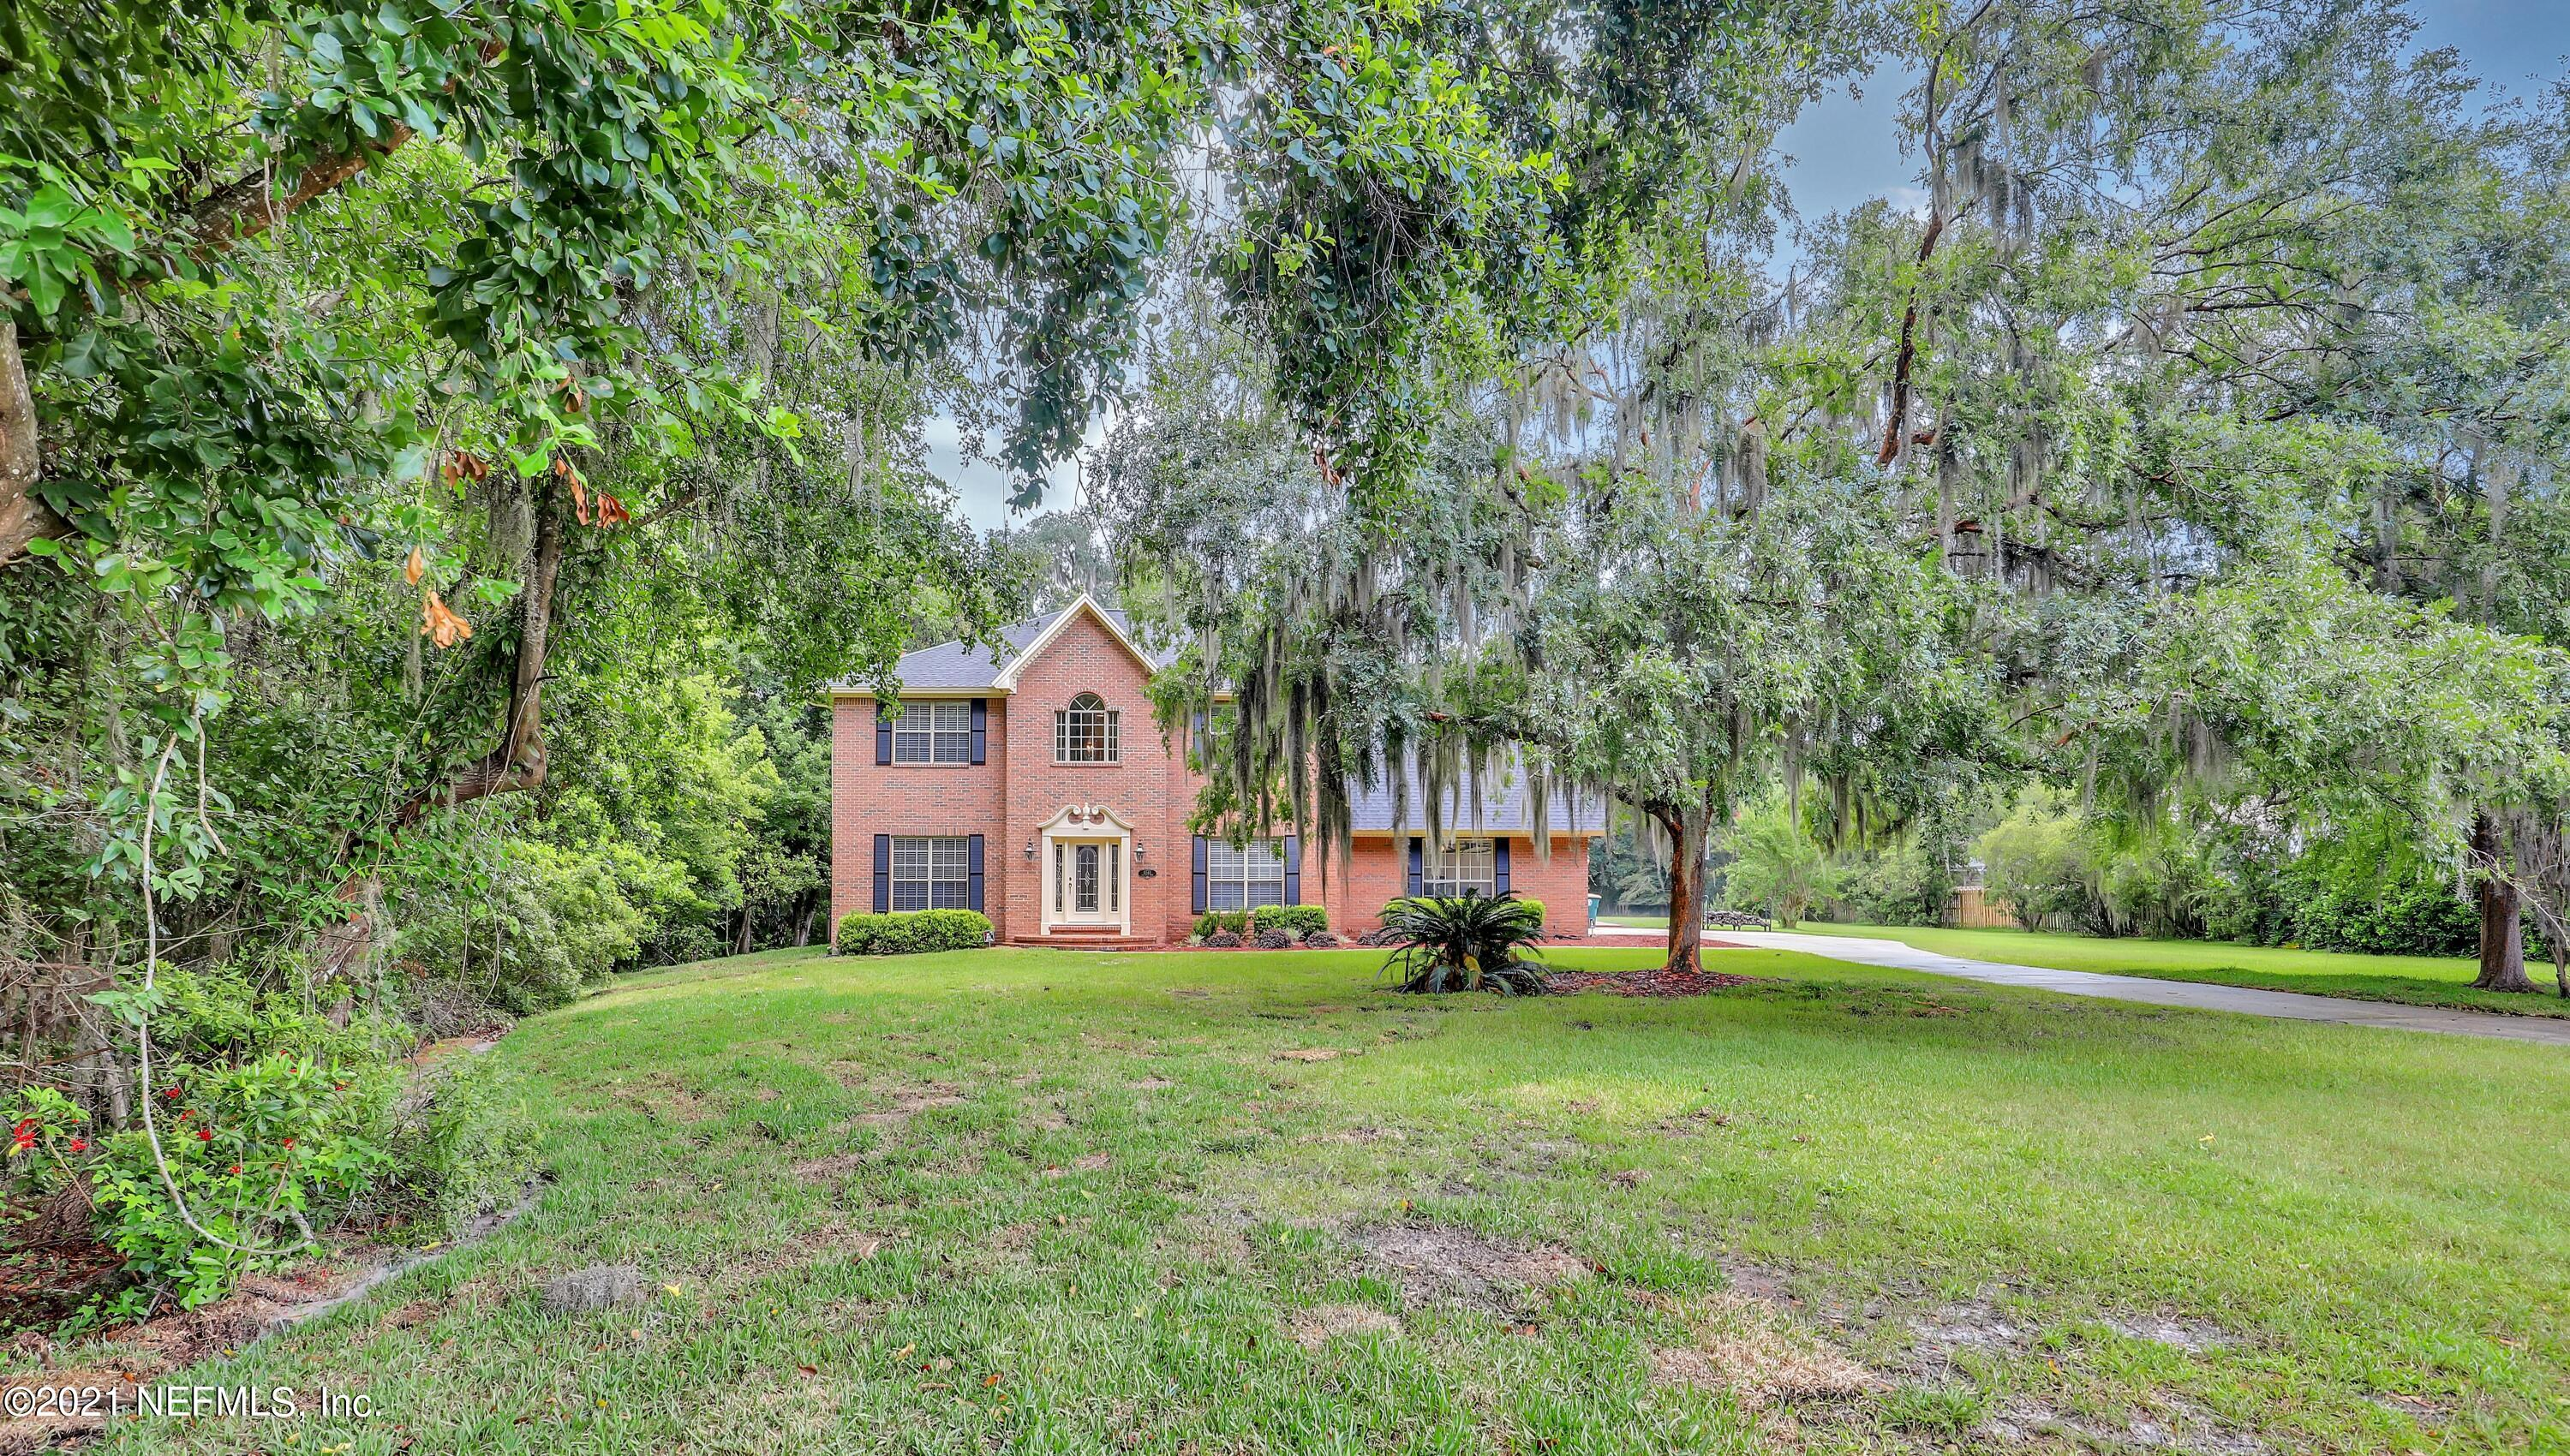 Beautiful custom two story brick home on 2.5 acres bordering Clearwater Creek and wetlands. The home sits by itself on a private cul-de-sac on a large, wooded/private lot. 5 bedrooms, 3 1/2 baths, large open kitchen with custom cherry cabinets and upgrades, all bathrooms have been renovated and upgraded to include glass showers, marble vanity tops and stone flooring. White oak flooring downstairs in kitchen, foyer, hall and dining, luxurious high grade carpeting throughout the house. Fireplace with floor to ceiling cabinetry on both sides with mantle. Built in bookcase upstairs overlooks foyer below. 10-12 ft ceilings downstairs, crown molding throughout the house. Large swimming pool and spa with expansive multi-level decking, enclosed by classic aluminum fencing.